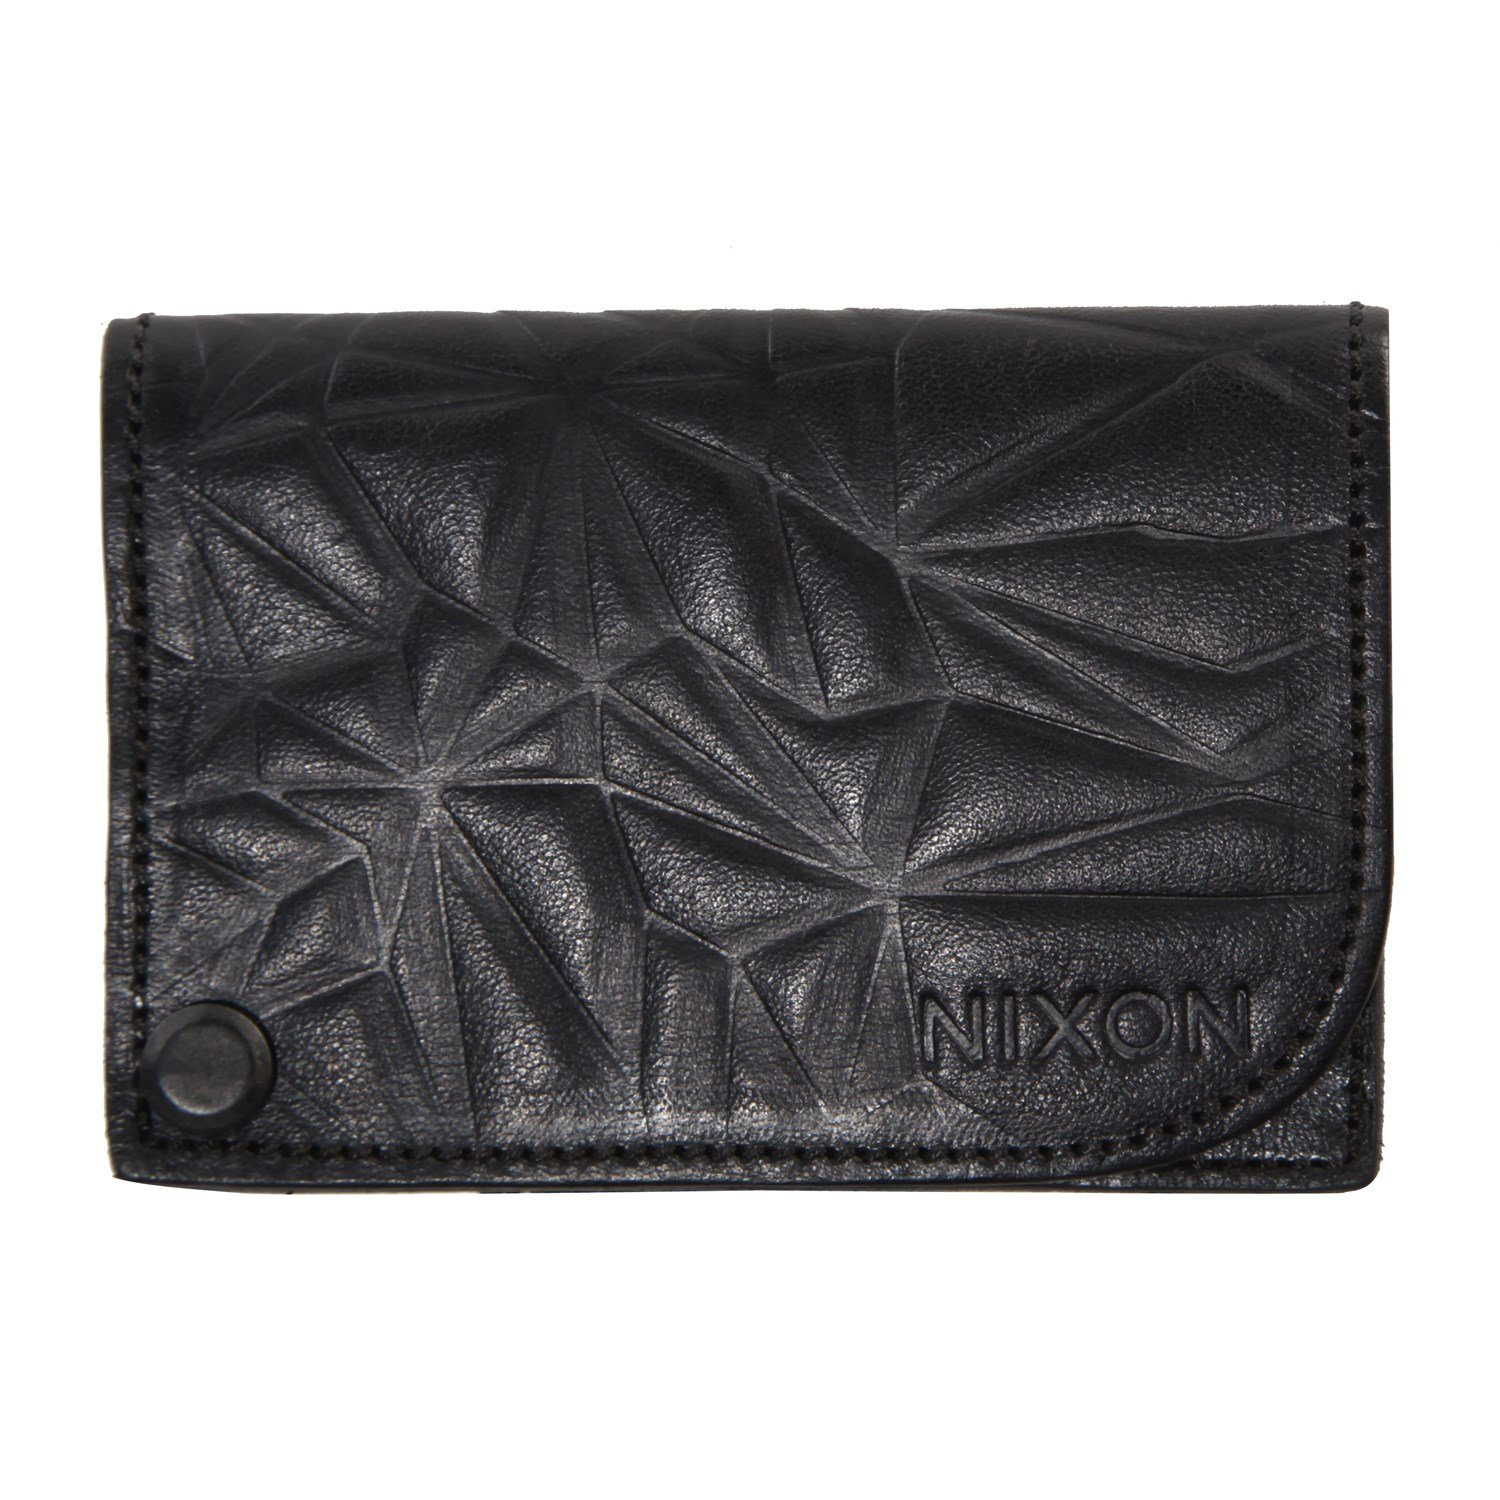 Nixon Men's Thayer Card Wallet All Black C2210-001